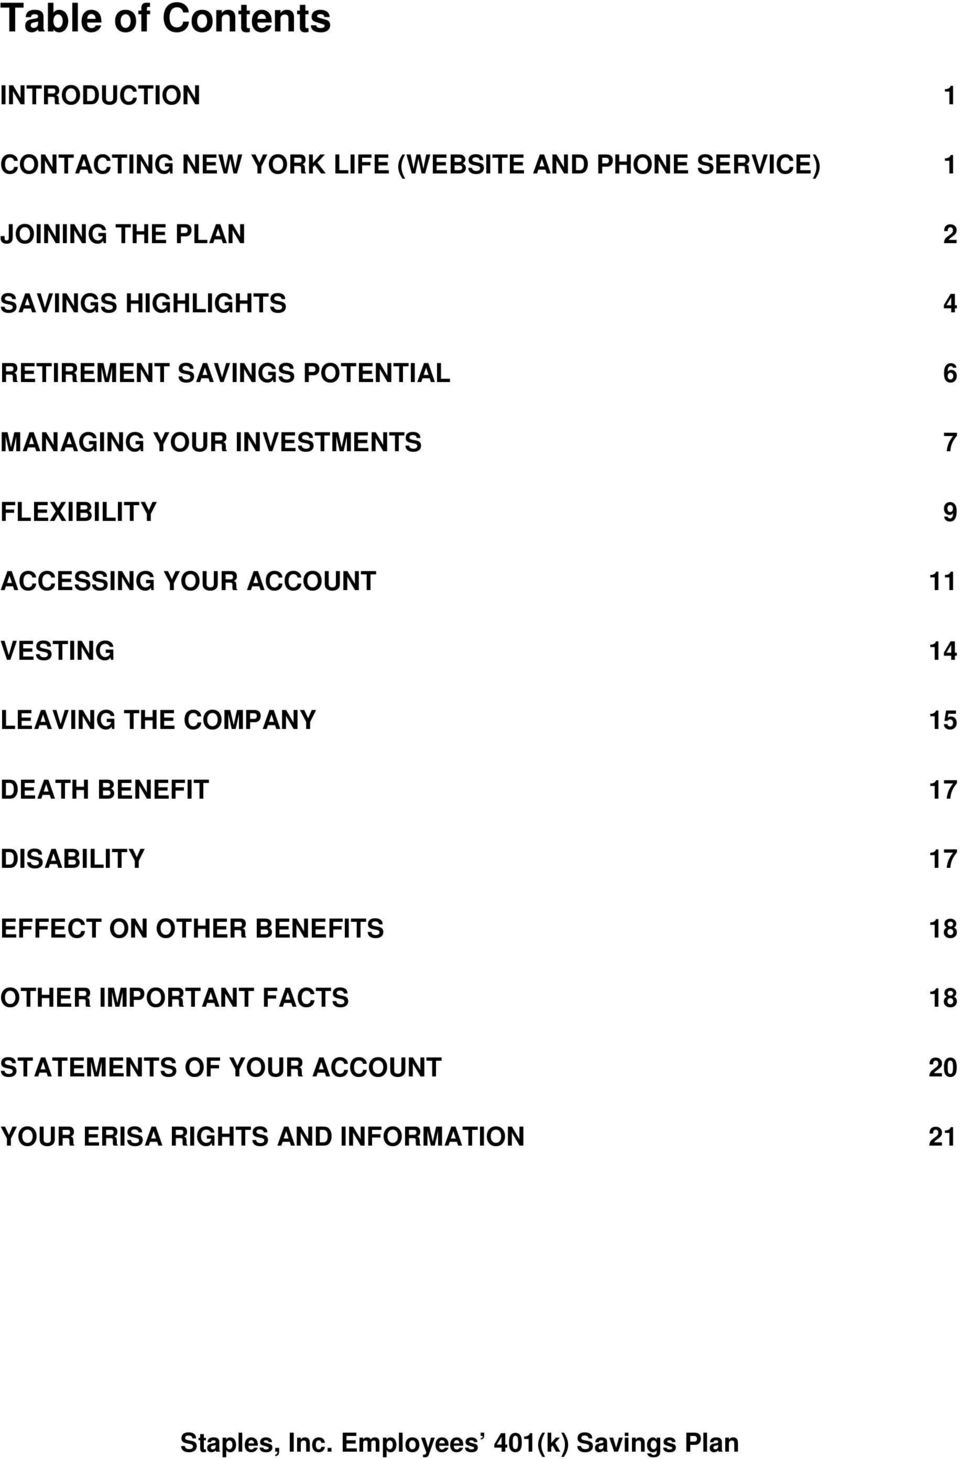 ACCOUNT 11 VESTING 14 LEAVING THE COMPANY 15 DEATH BENEFIT 17 DISABILITY 17 EFFECT ON OTHER BENEFITS 18 OTHER